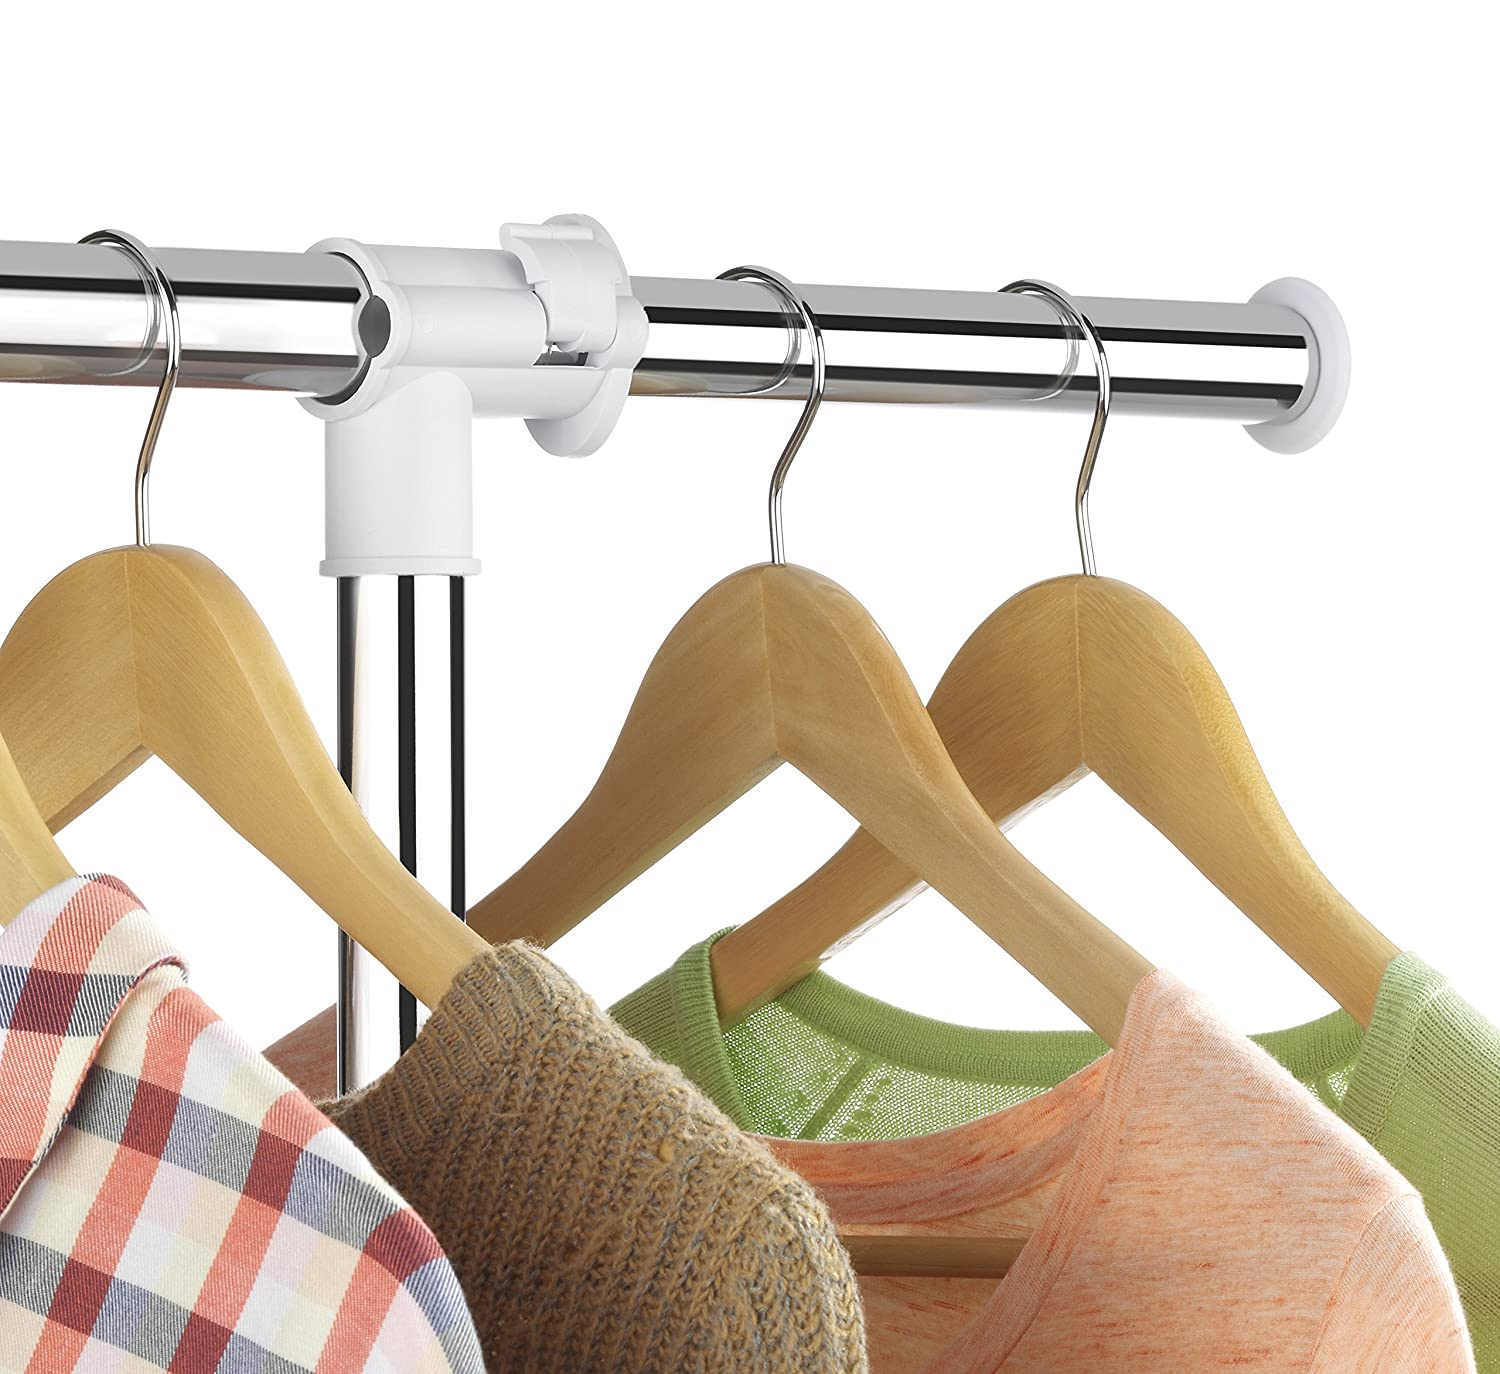 Whitmor Deluxe Adjustable Garment Rack   Rolling Clothes Organizer   White  And Chrome 6024 5908 BB